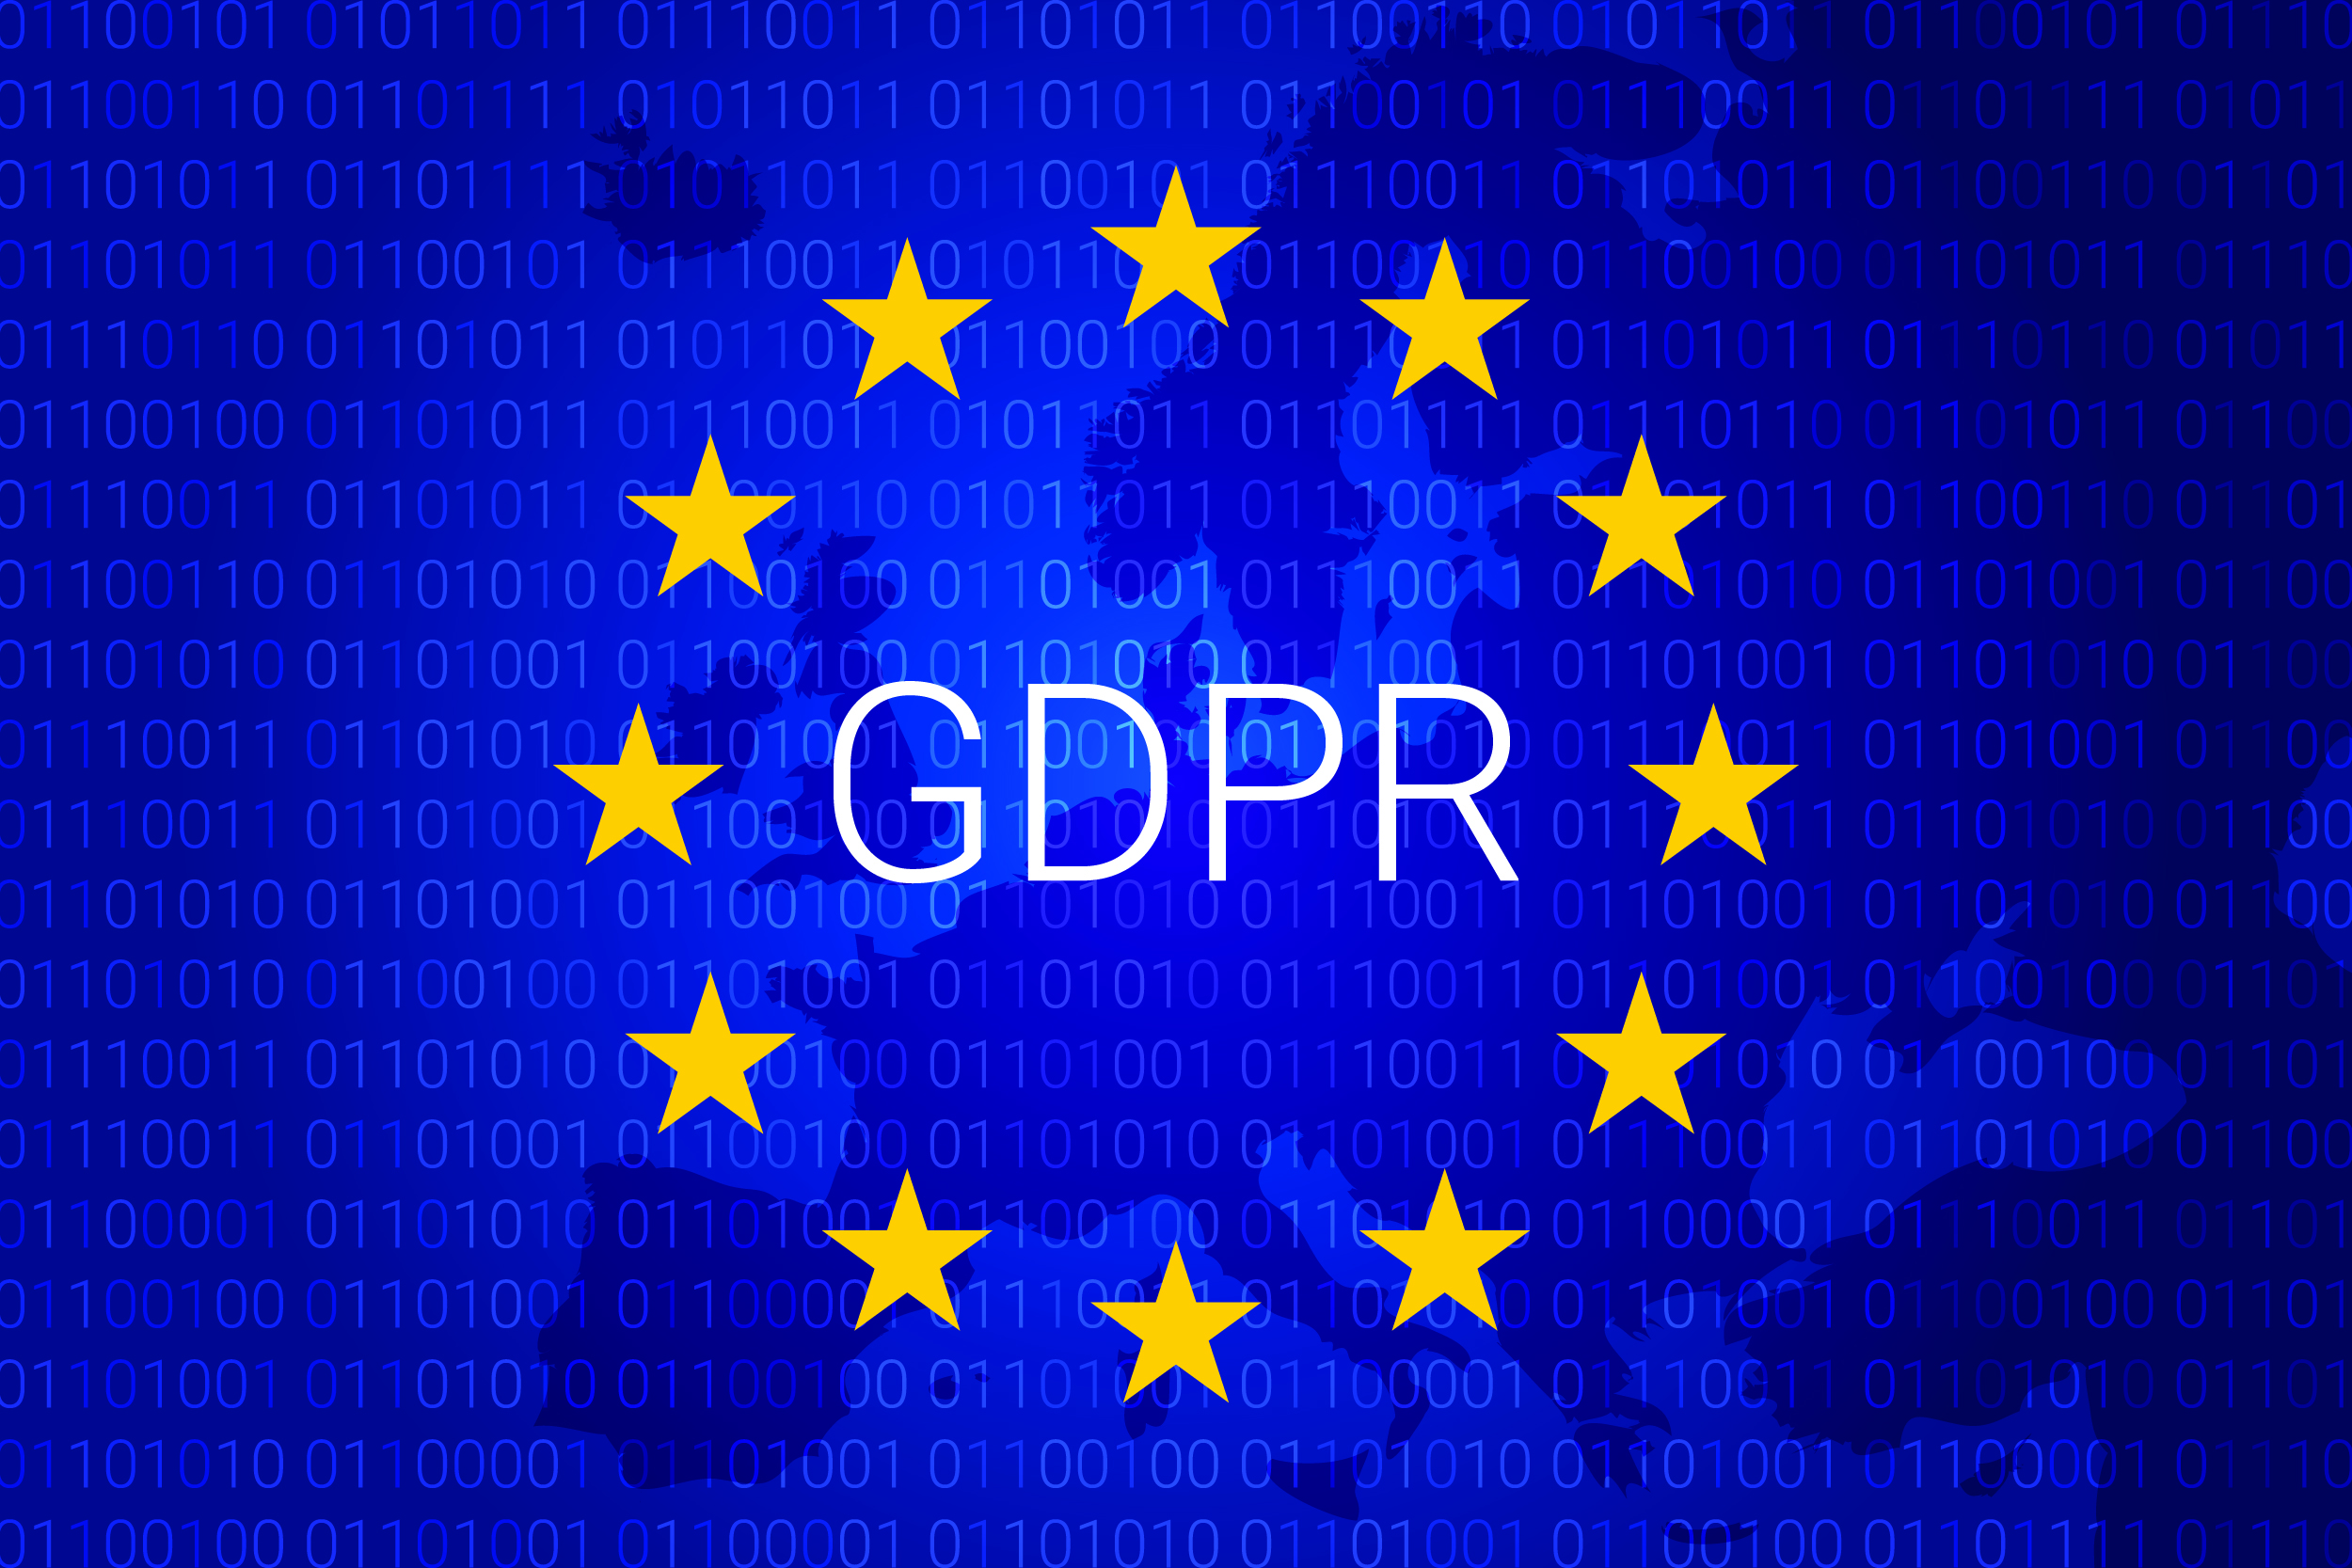 GDPR: compliance or contravention?